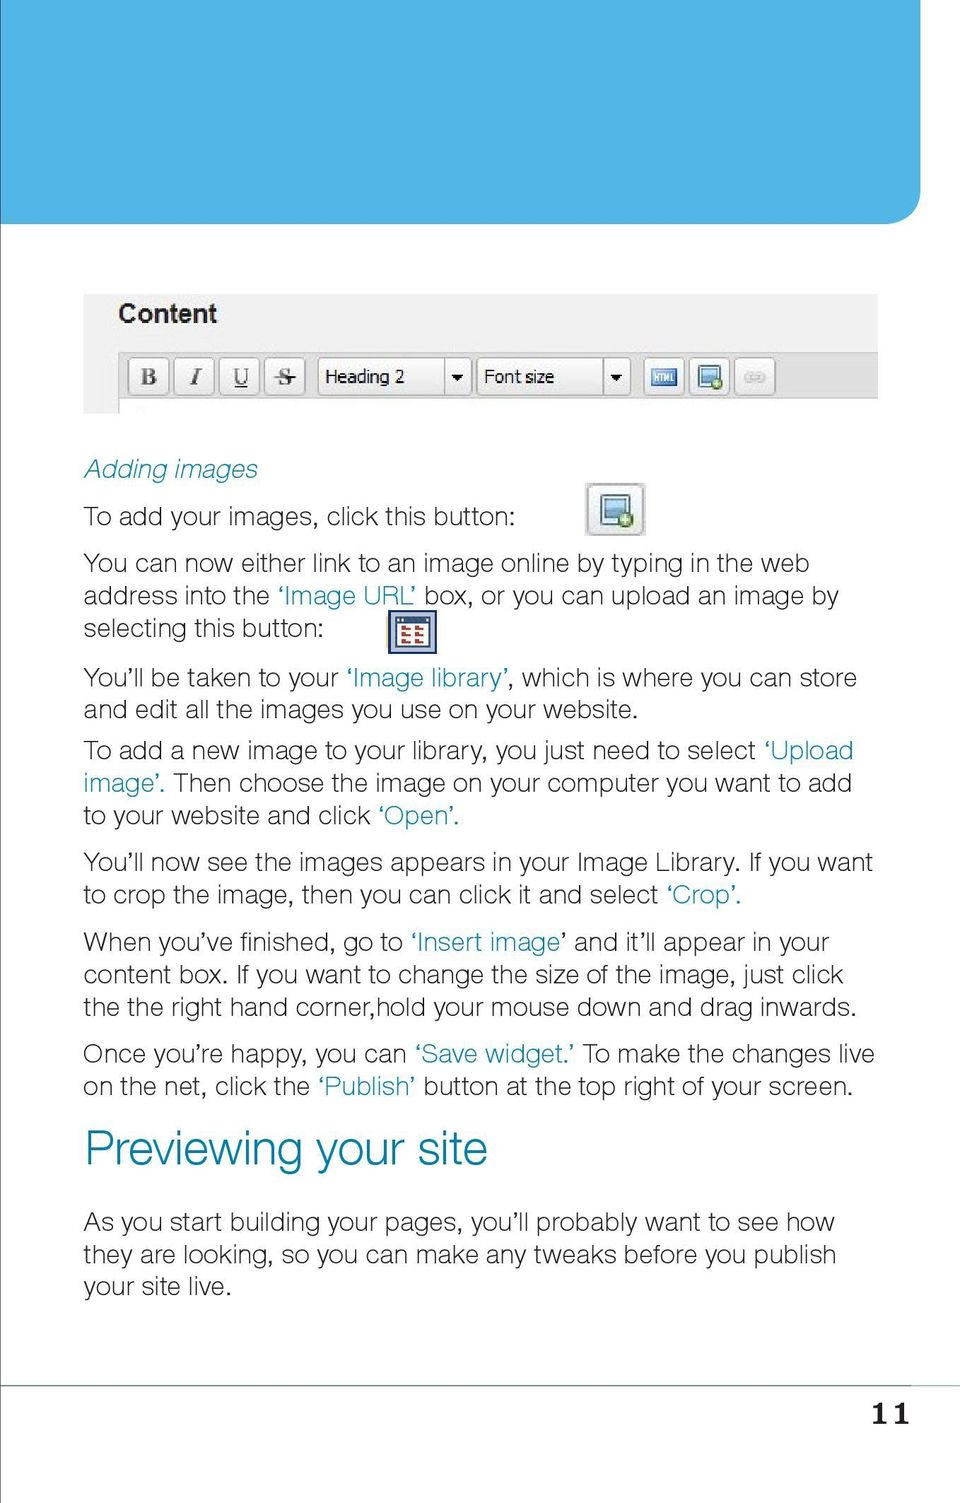 Then choose the image on your computer you want to add to your website and click Open. You ll now see the images appears in your Image Library.